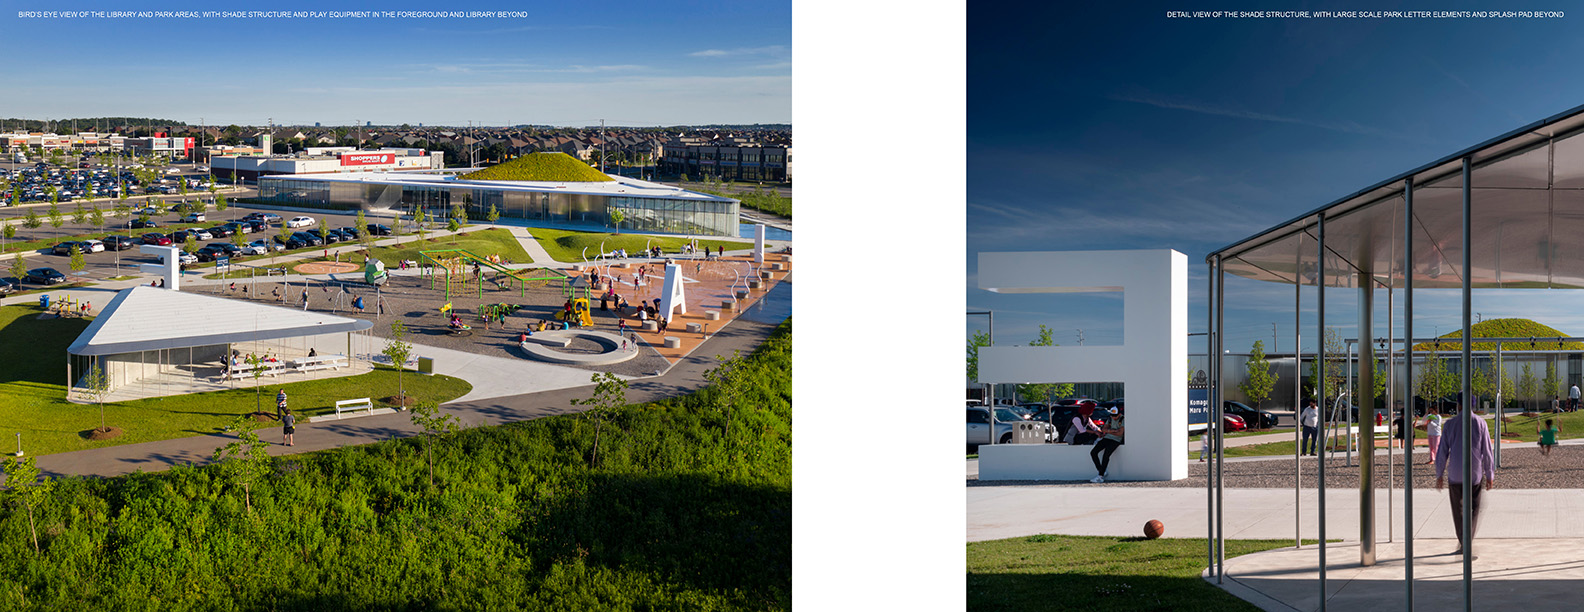 BIRD'S EYE VIEW OF THE LIBRARY AND PARK AREAS, WITH SHADE STRUCTURE AND PLAY EQUIPMENT IN THE FOREGROUND AND LIBRARY BEYOND & DETAIL VIEW OF THE SHADE STRUCTURE, WITH LARGE SCALE PARK LETTER ELEMENTS AND S Nic Lehoux